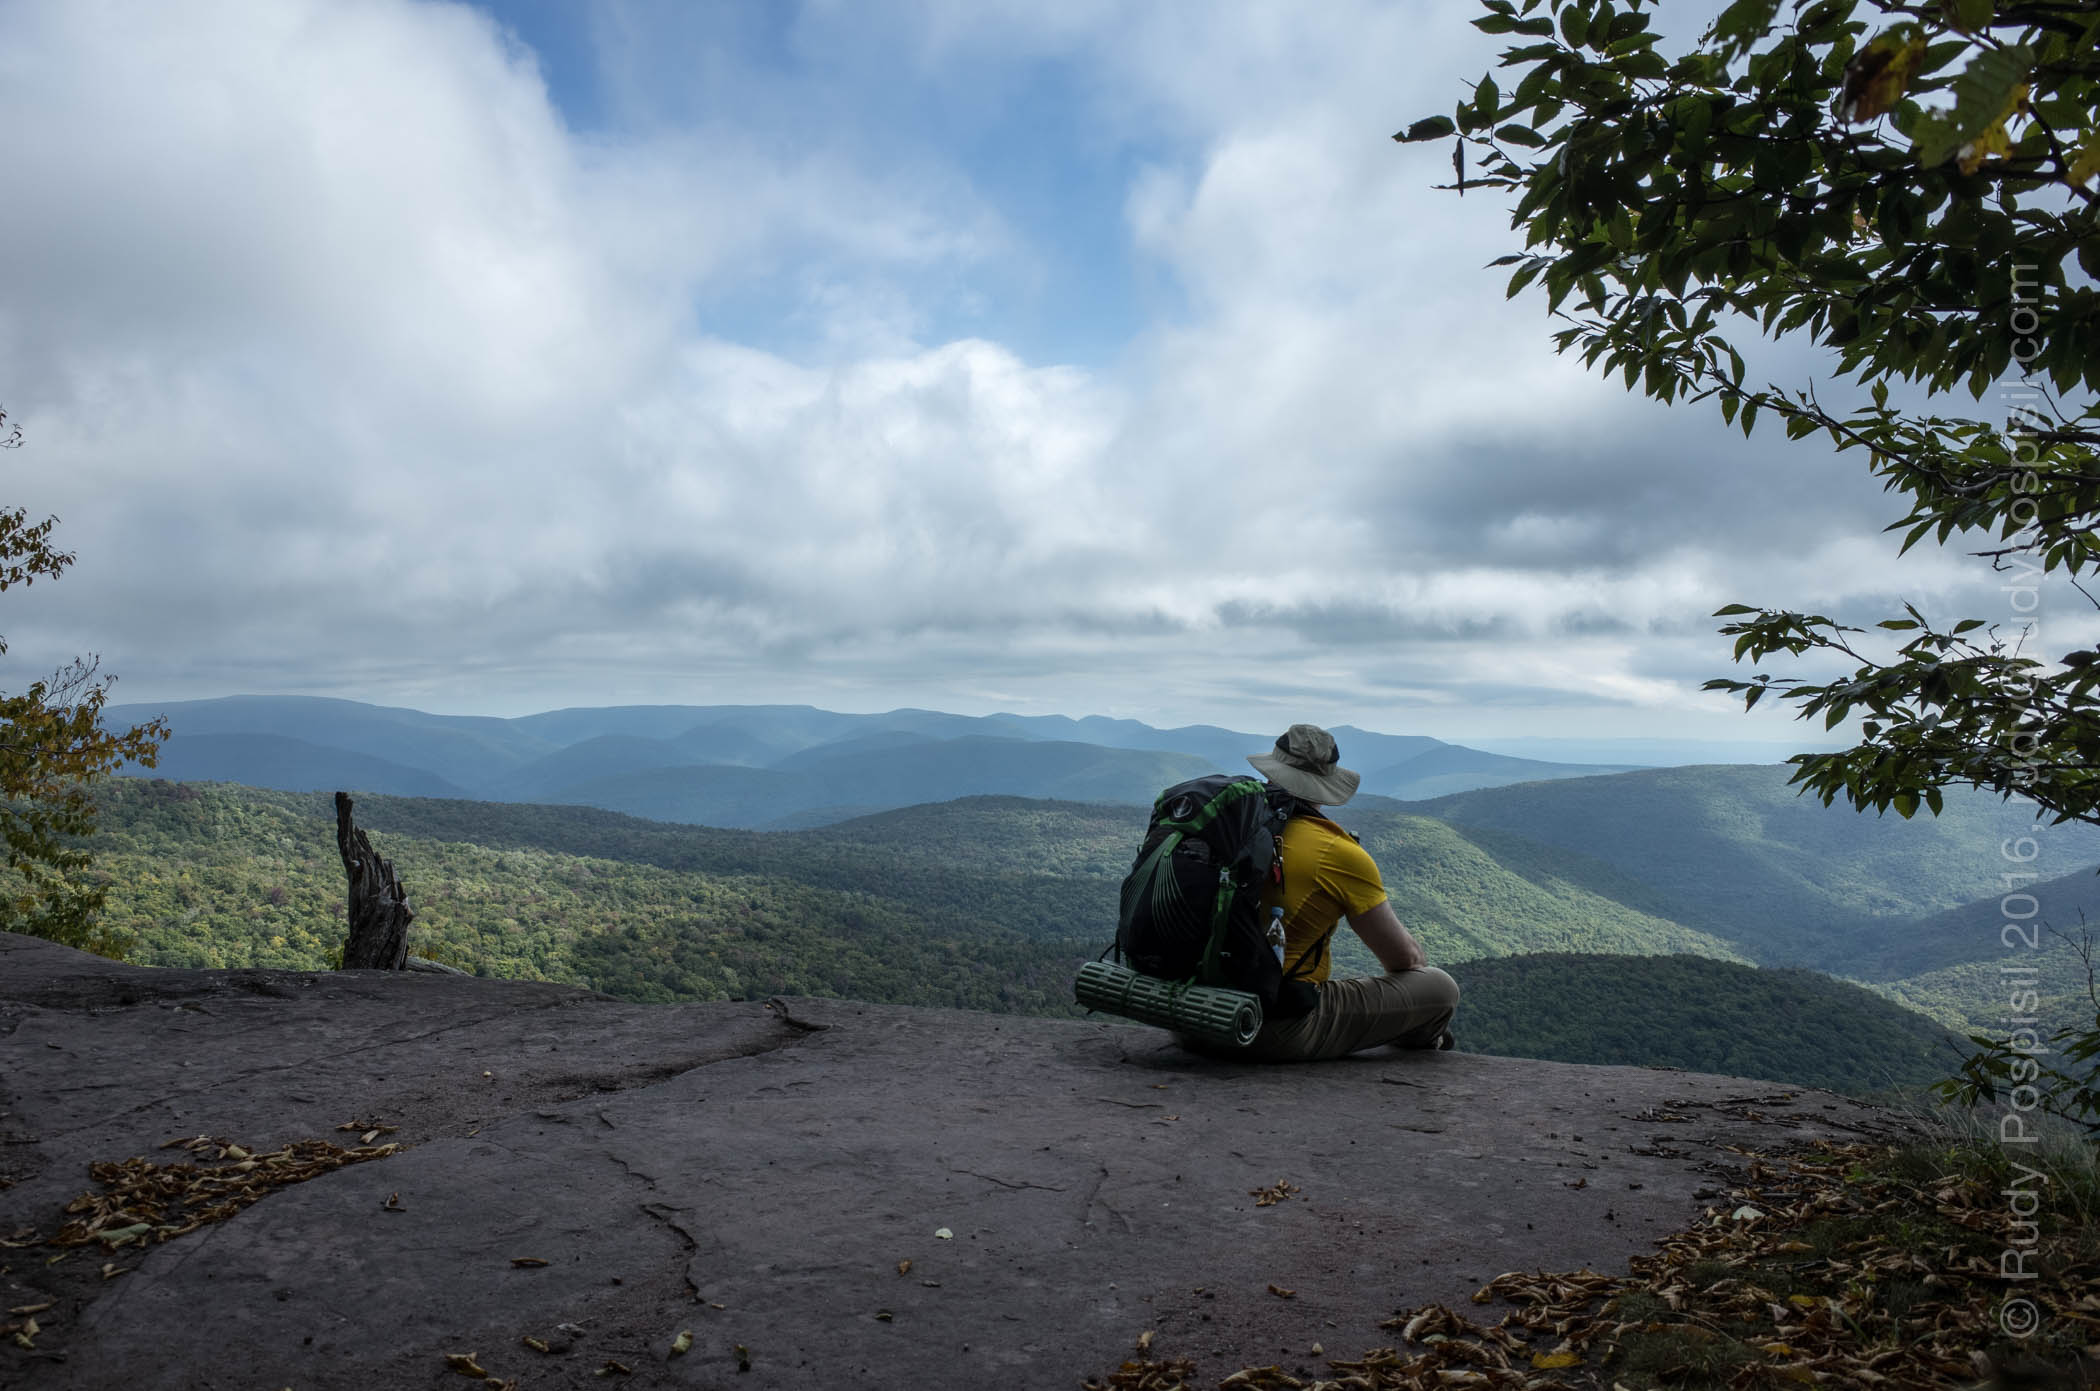 Sitting on the Giant Ledge on the way to the top of Panther Mountain in the Catskills.